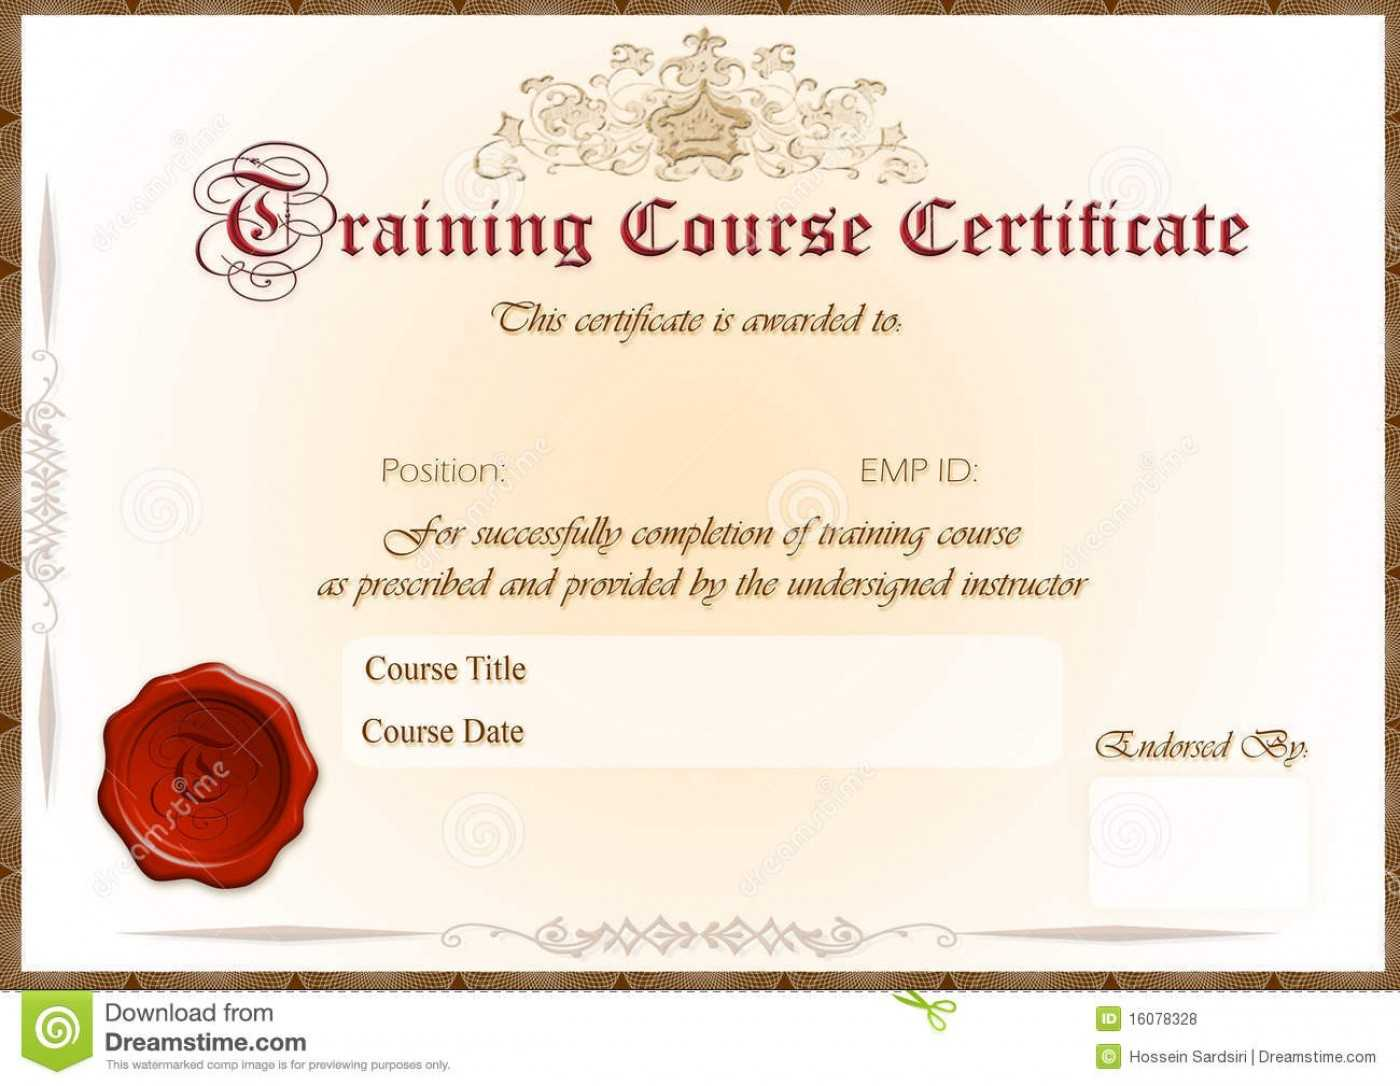 026 Template Ideas Certificates Free Gift Certificate Makes In This Certificate Entitles The Bearer Template